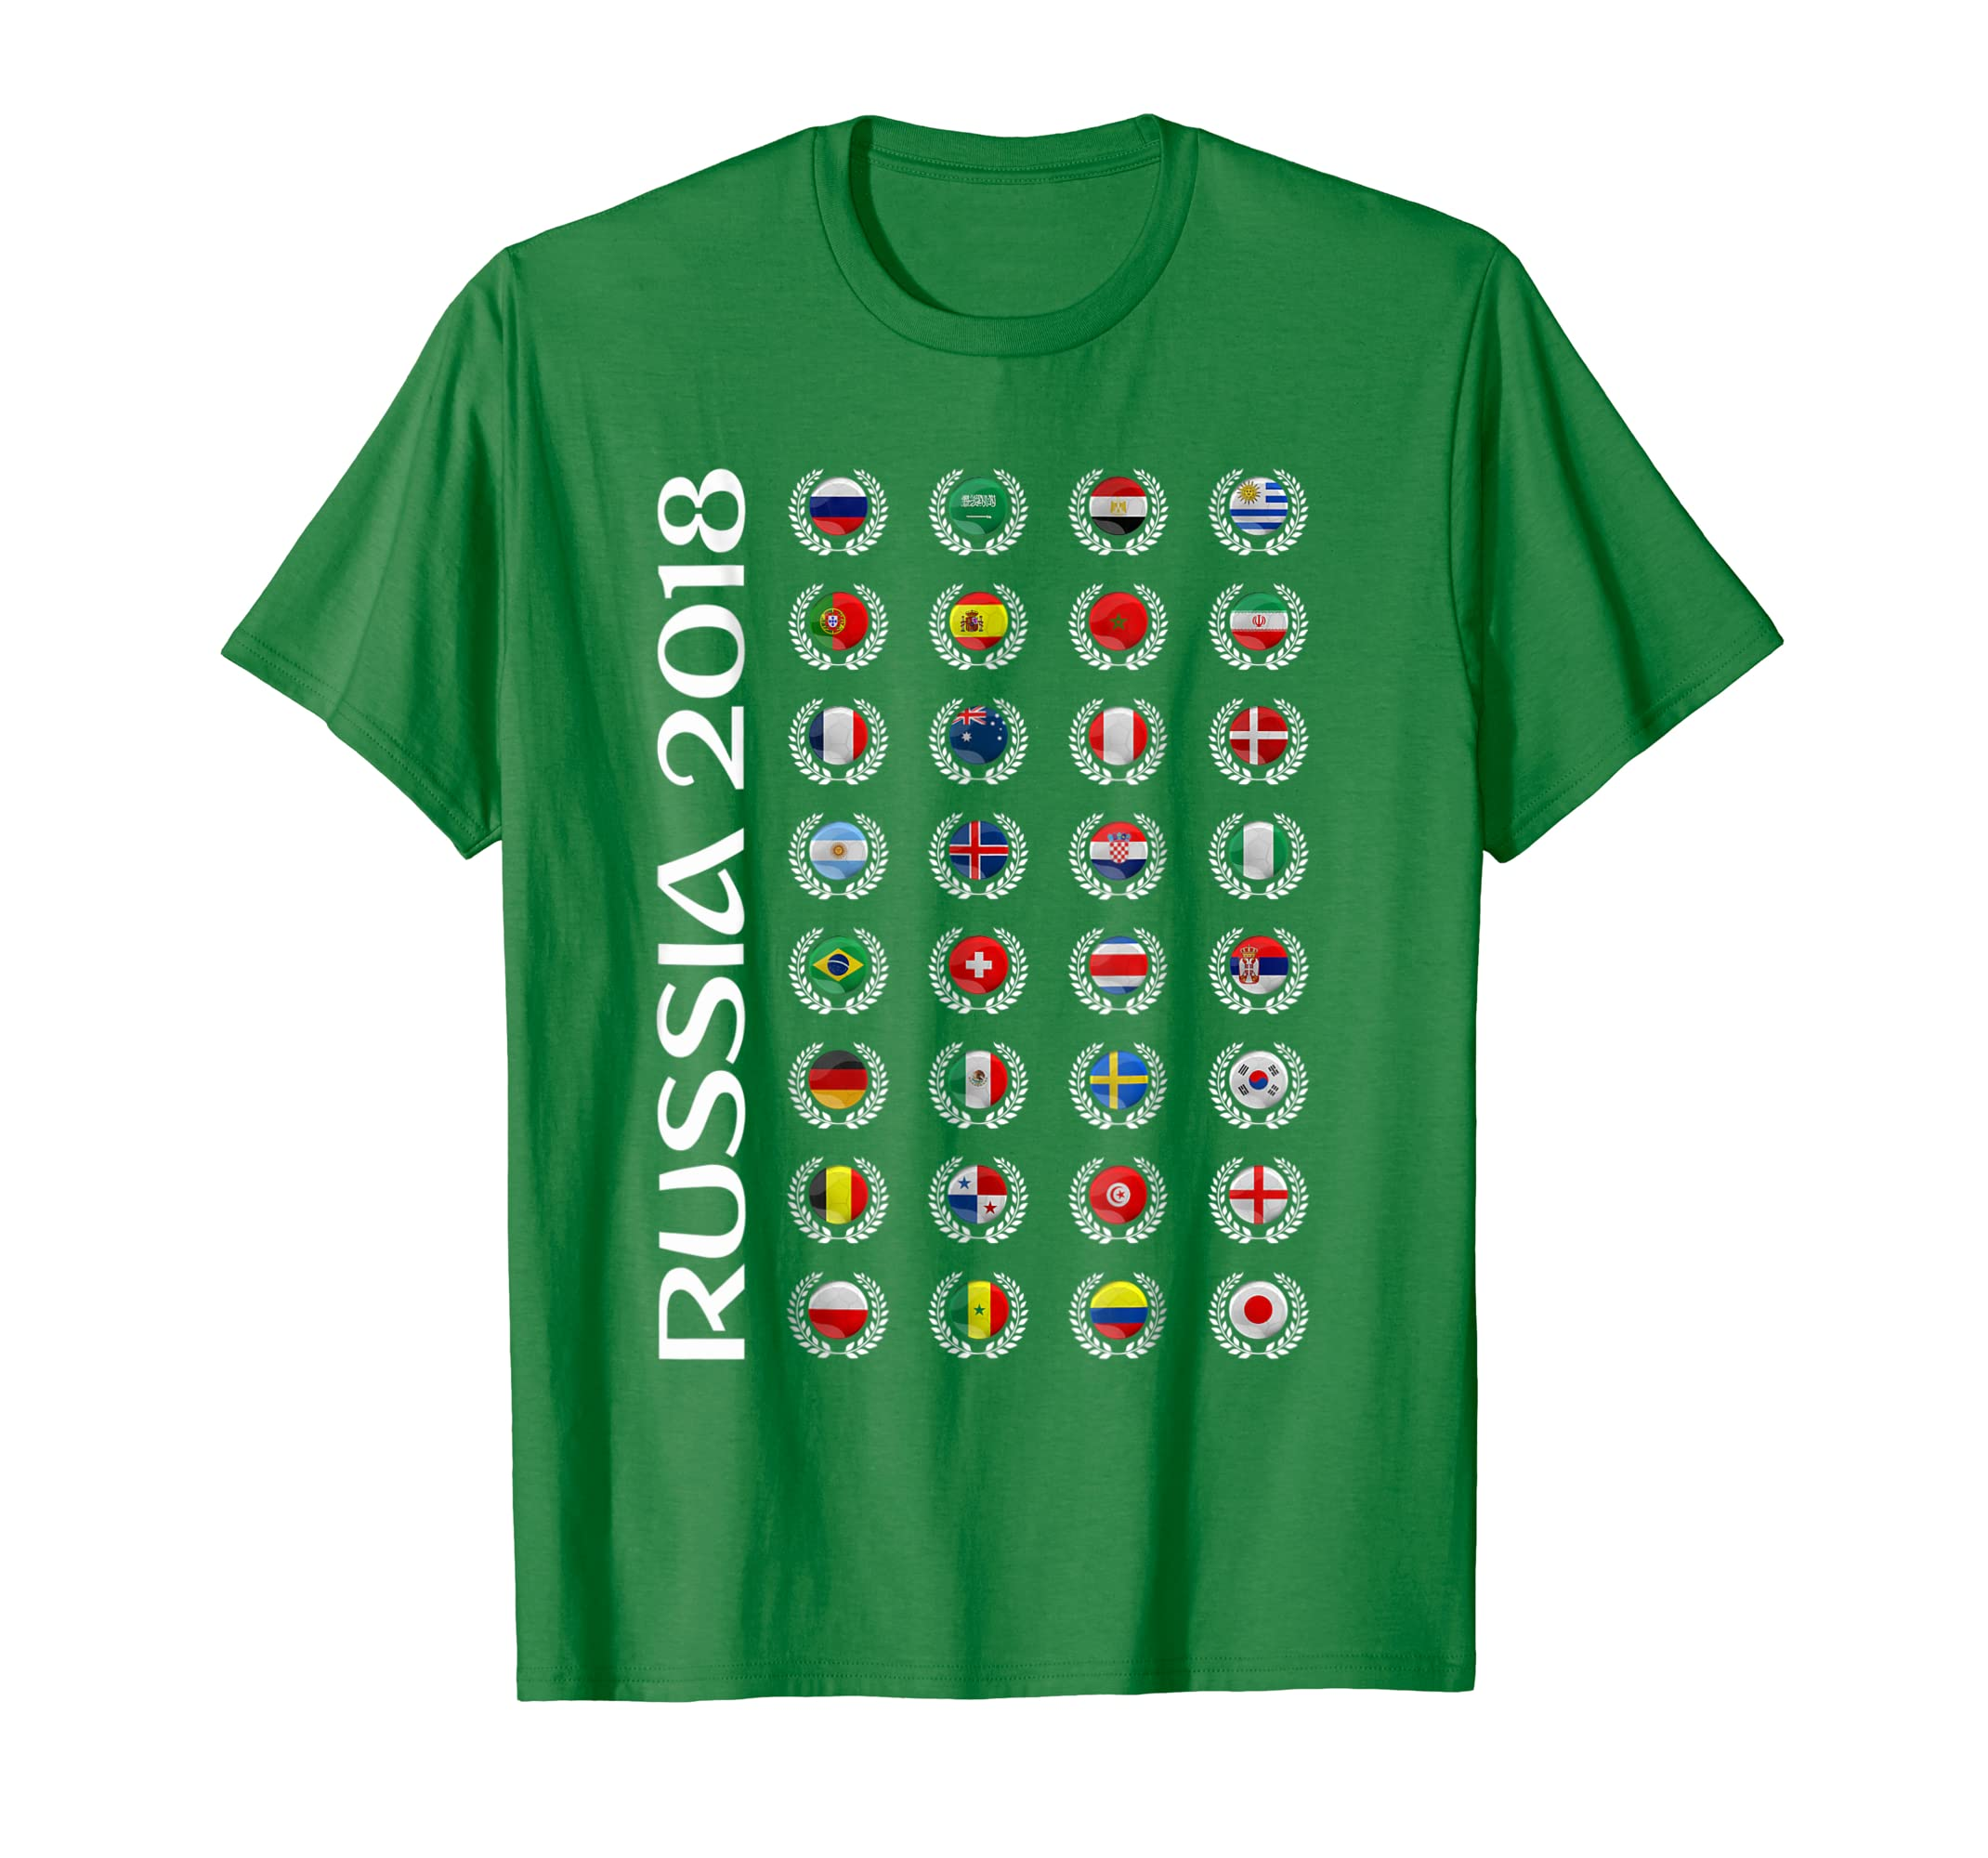 Russia Soccer T-shirt 2018 World Football Cup All Teams 32 | MultiMv ...